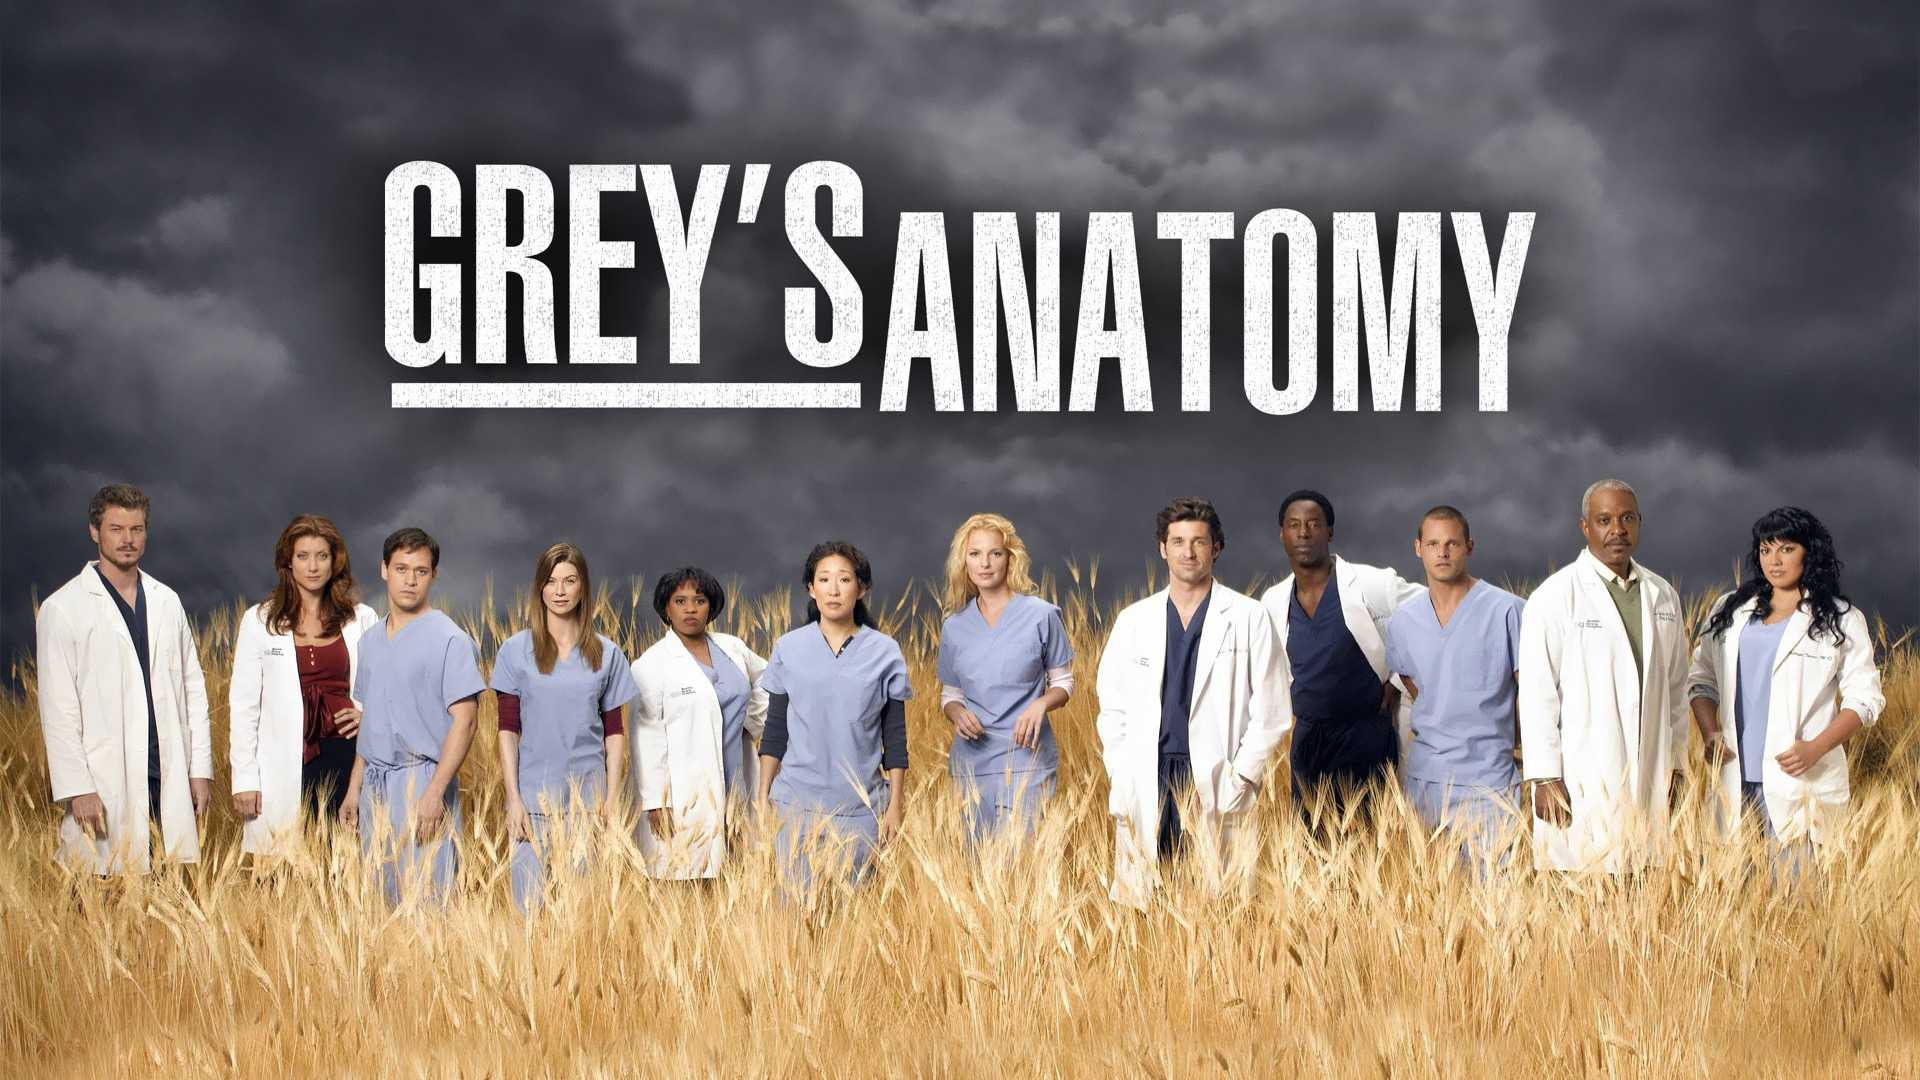 """Grey\'s Anatomy"""" impresses with surgical flair and romance"""